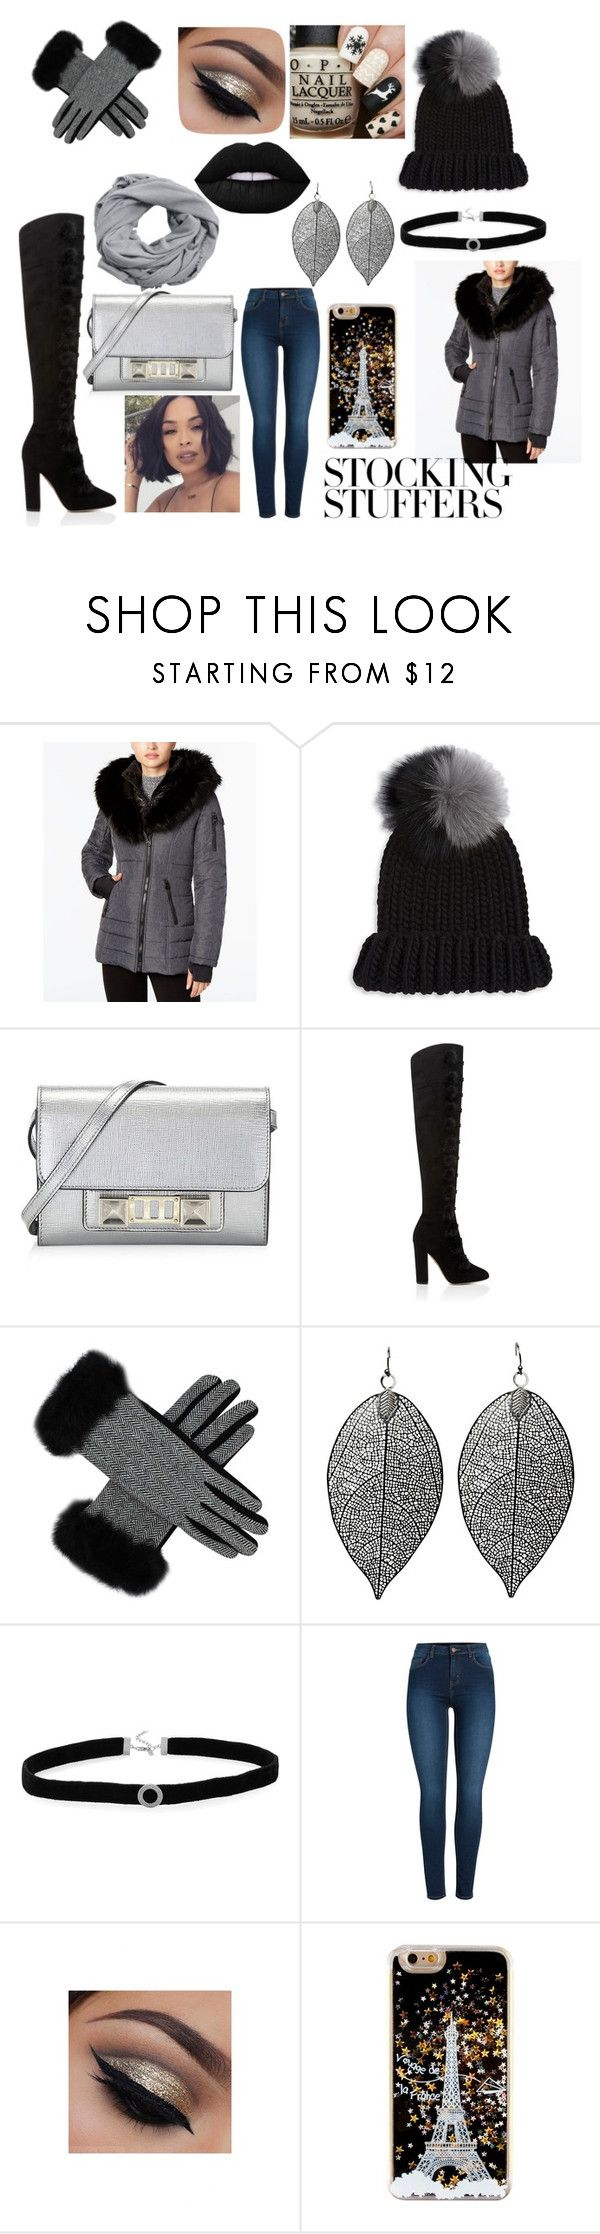 """""""Black Friday 😅😅😜😘😇"""" by covergirl1670 ❤ liked on Polyvore featuring Laundry by Shelli Segal, Eugenia Kim, Proenza Schouler, BillyTheTree, Pieces and MANGO"""